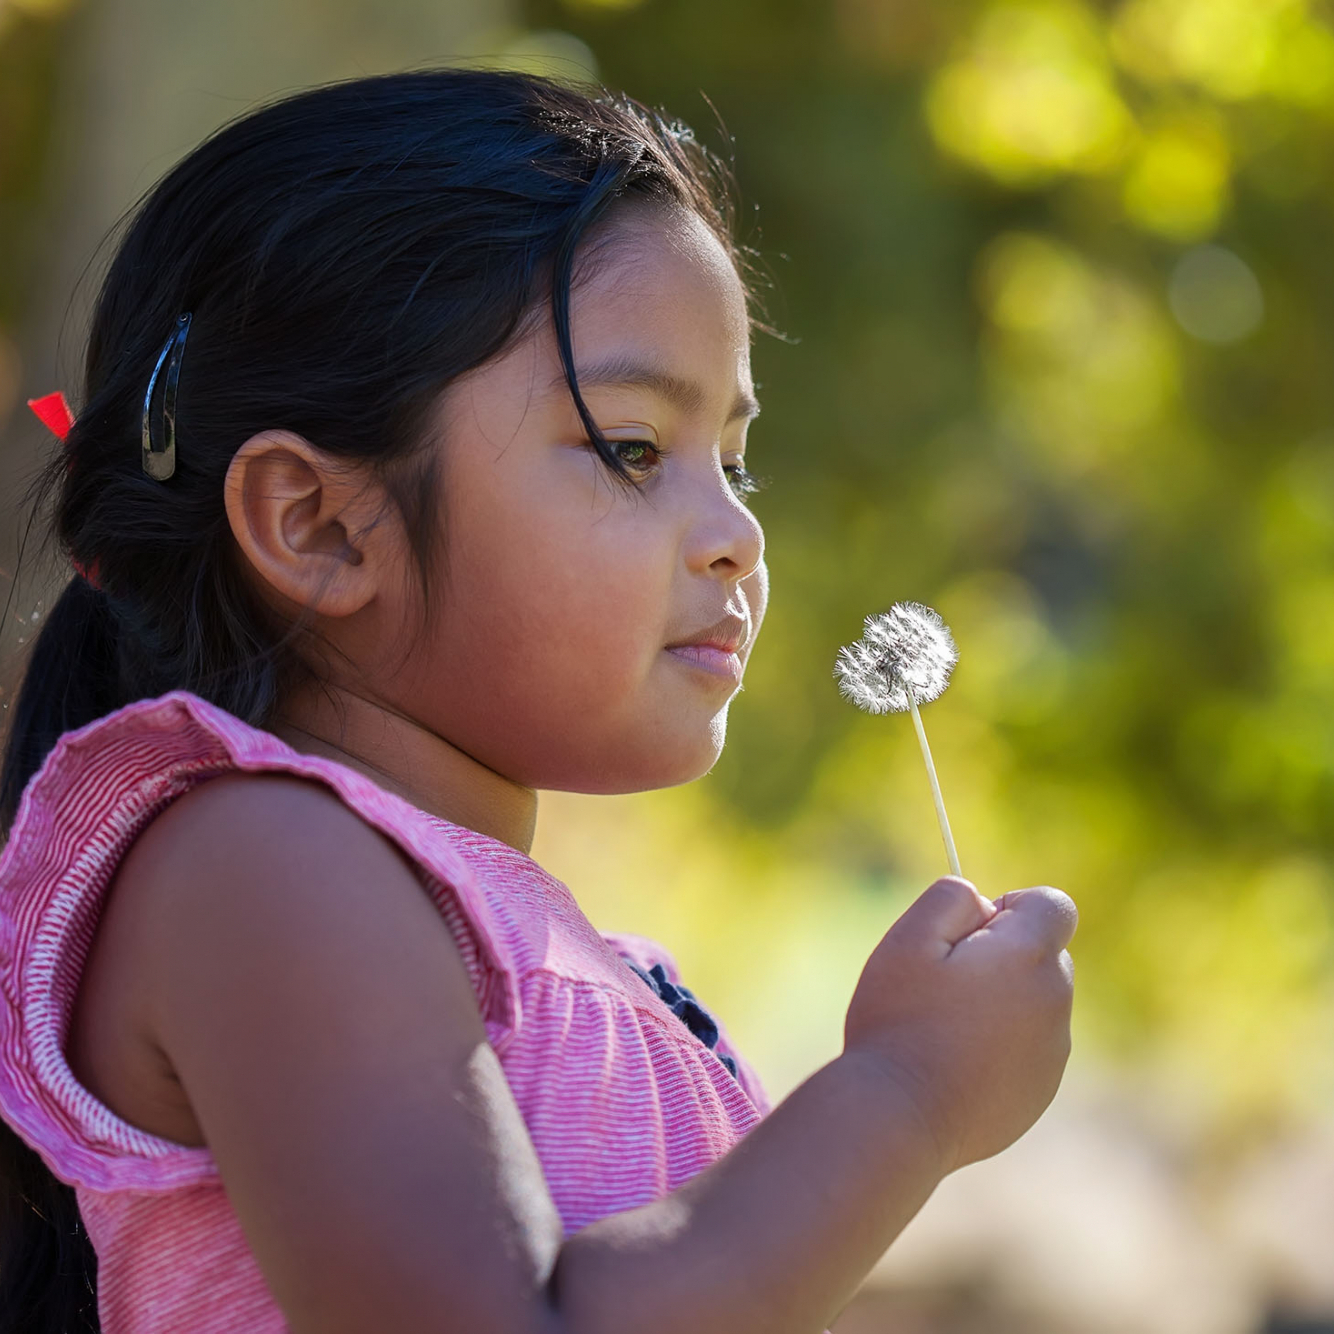 A thouthful little kid holding a dandelion in her hand that is close to her face and surrounded by green foliage.